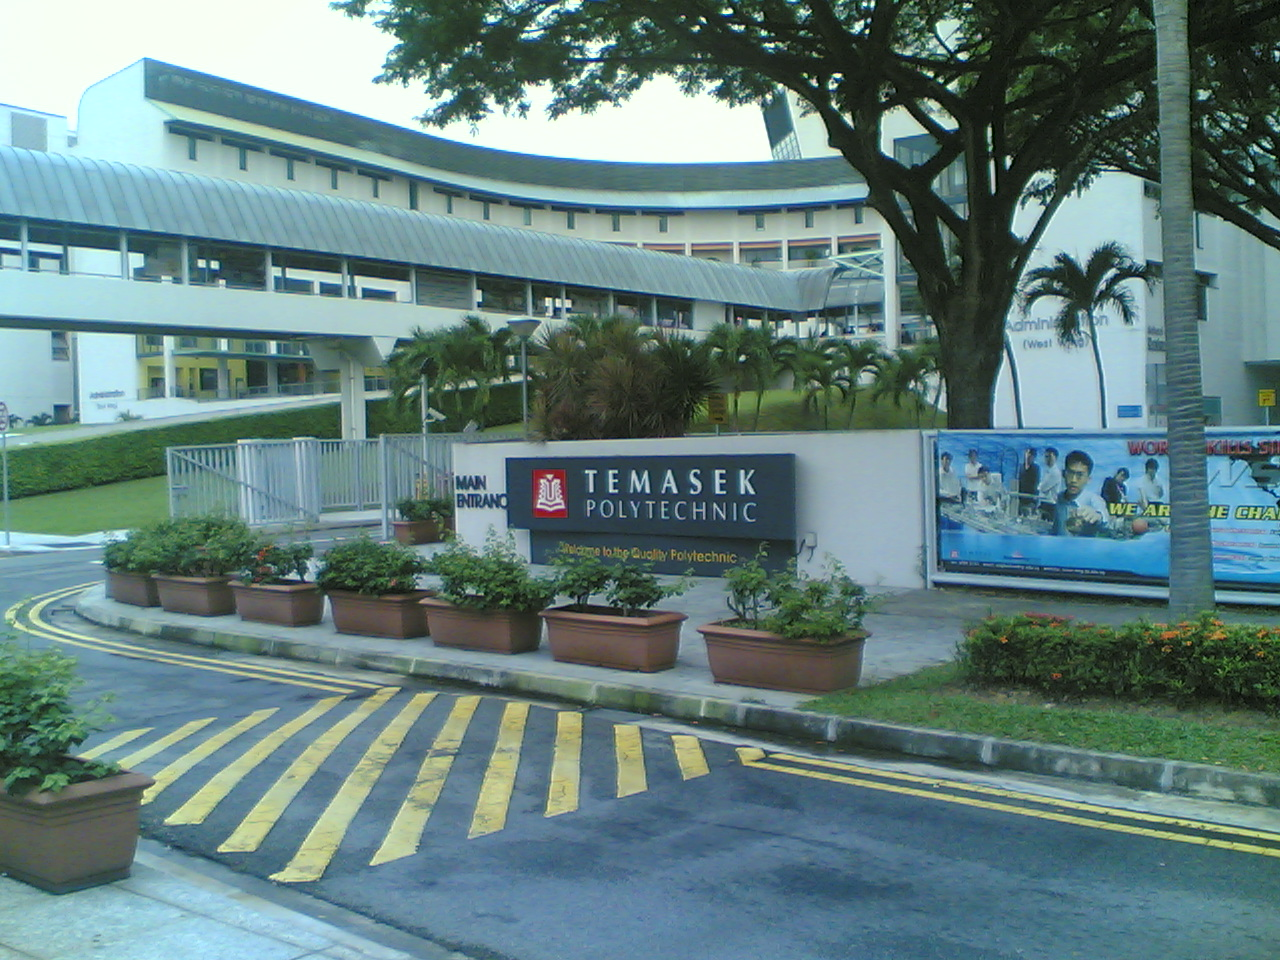 File:TEMASEK POLYTECHNIC.jpg - Wikipedia, the free encyclopedia